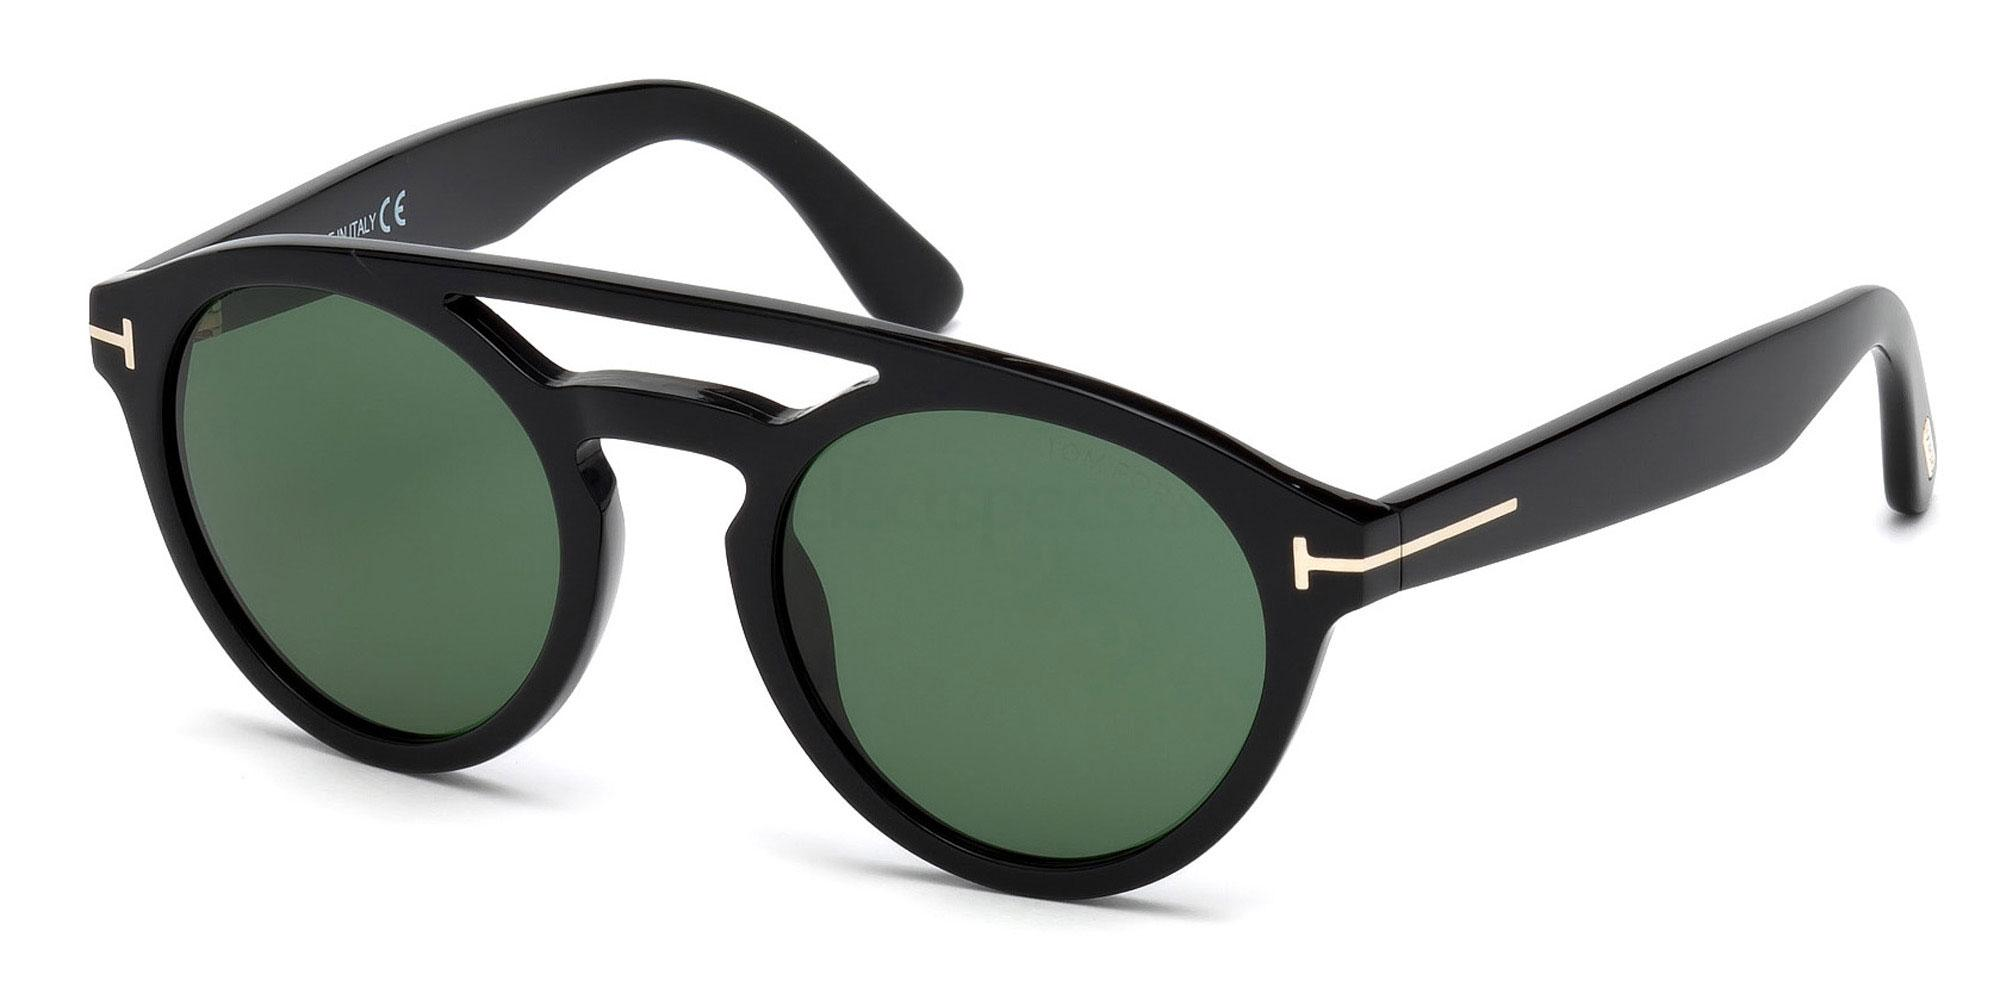 01N FT0537 Sunglasses, Tom Ford